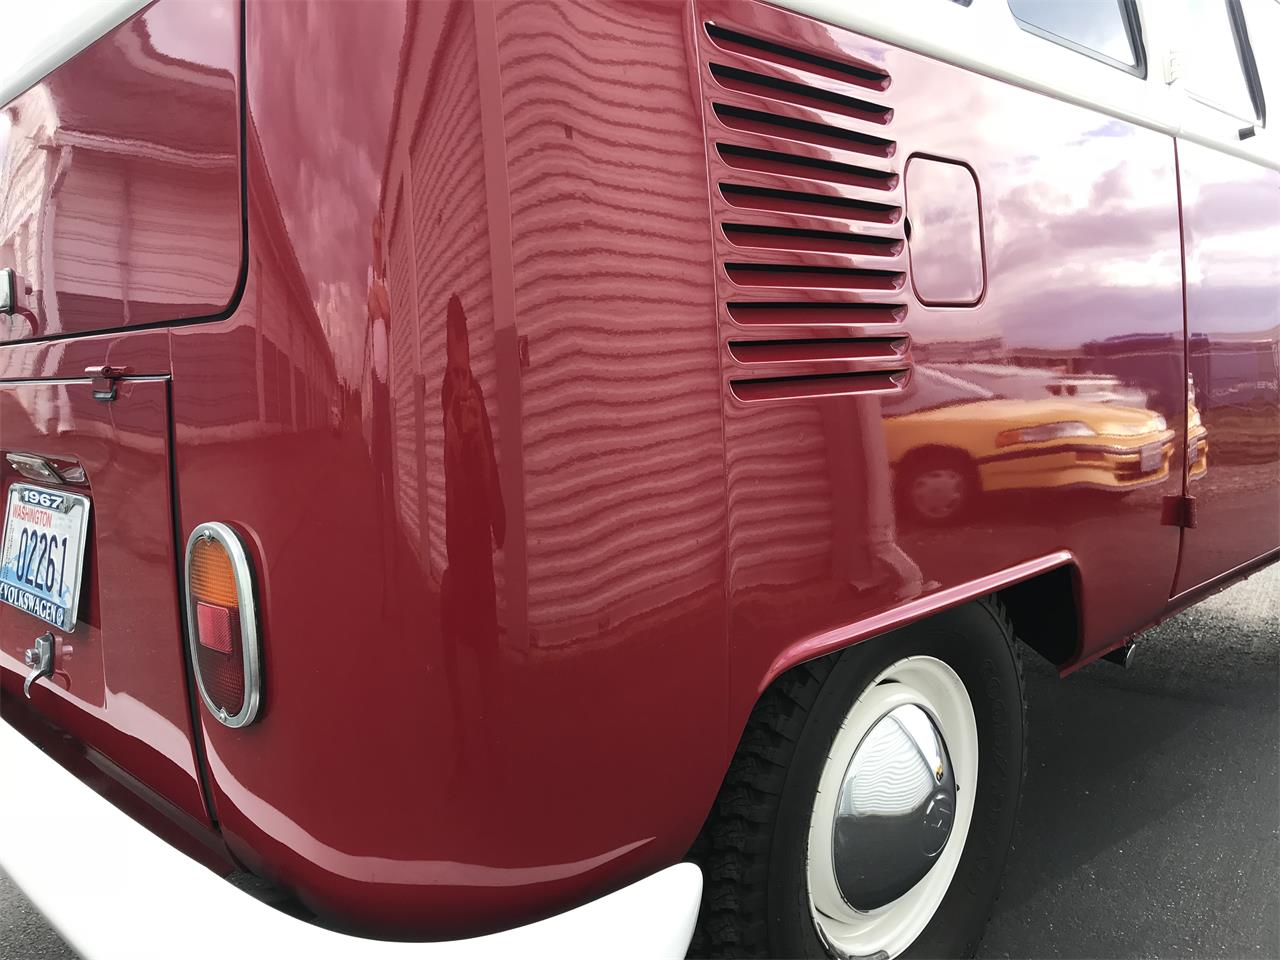 Large Picture of Classic 1967 Volkswagen Bus Offered by Imports & Classics - OHRO